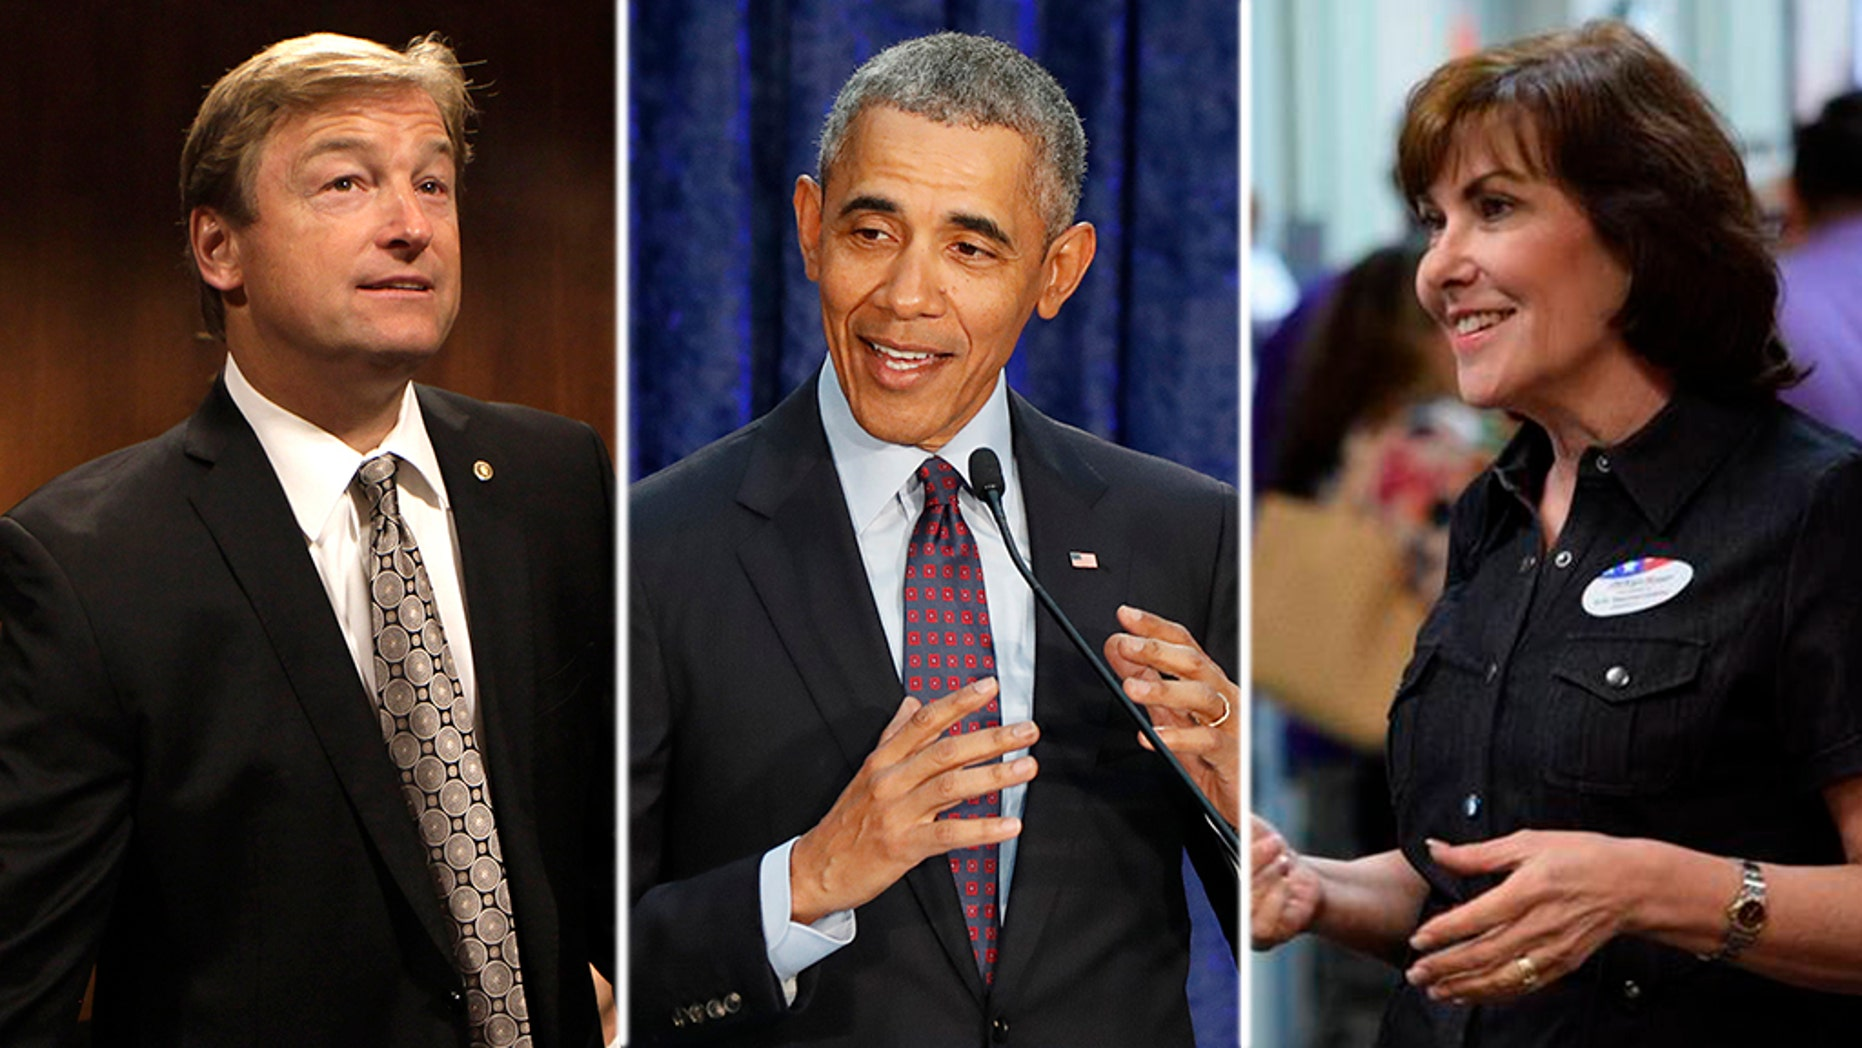 """Nevada Republican Sen. Dean Heller (left) is using Barack Obama's infamous """"you didn't build that"""" line to mock Democratic Rep. Jacky Rosen's (right) claims to have started her own business."""